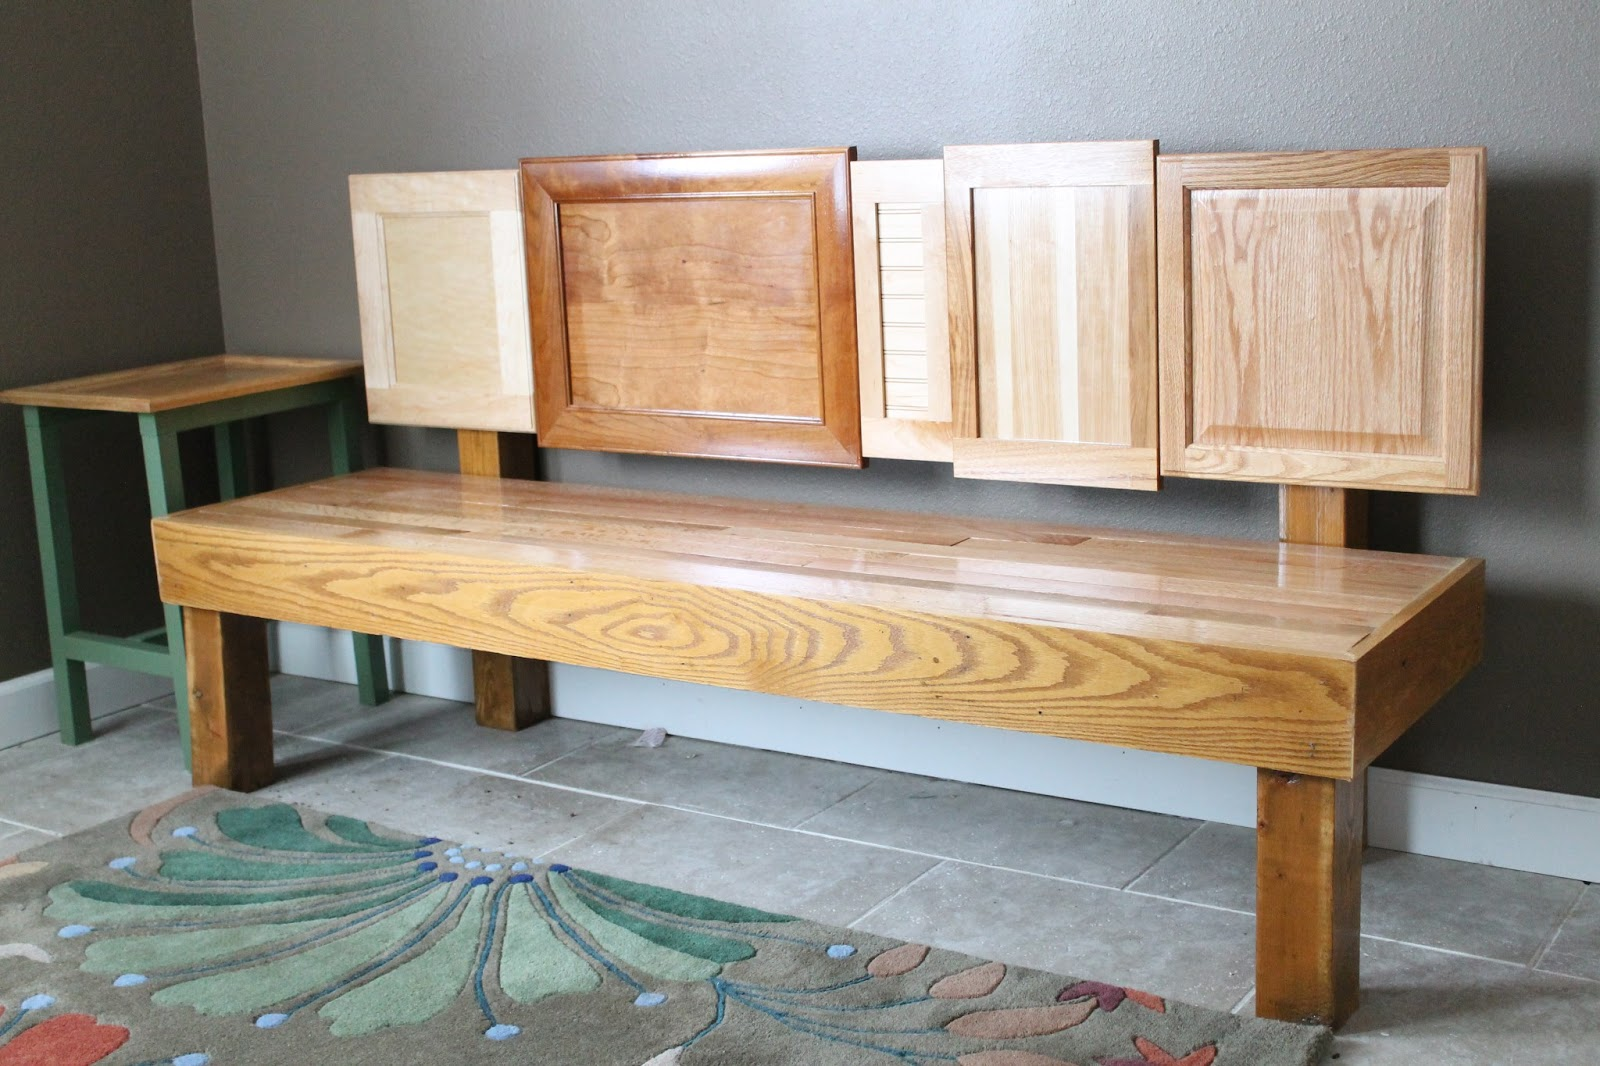 & DIY Cabinet Door Bench u2013 Do Small Things with Great Love